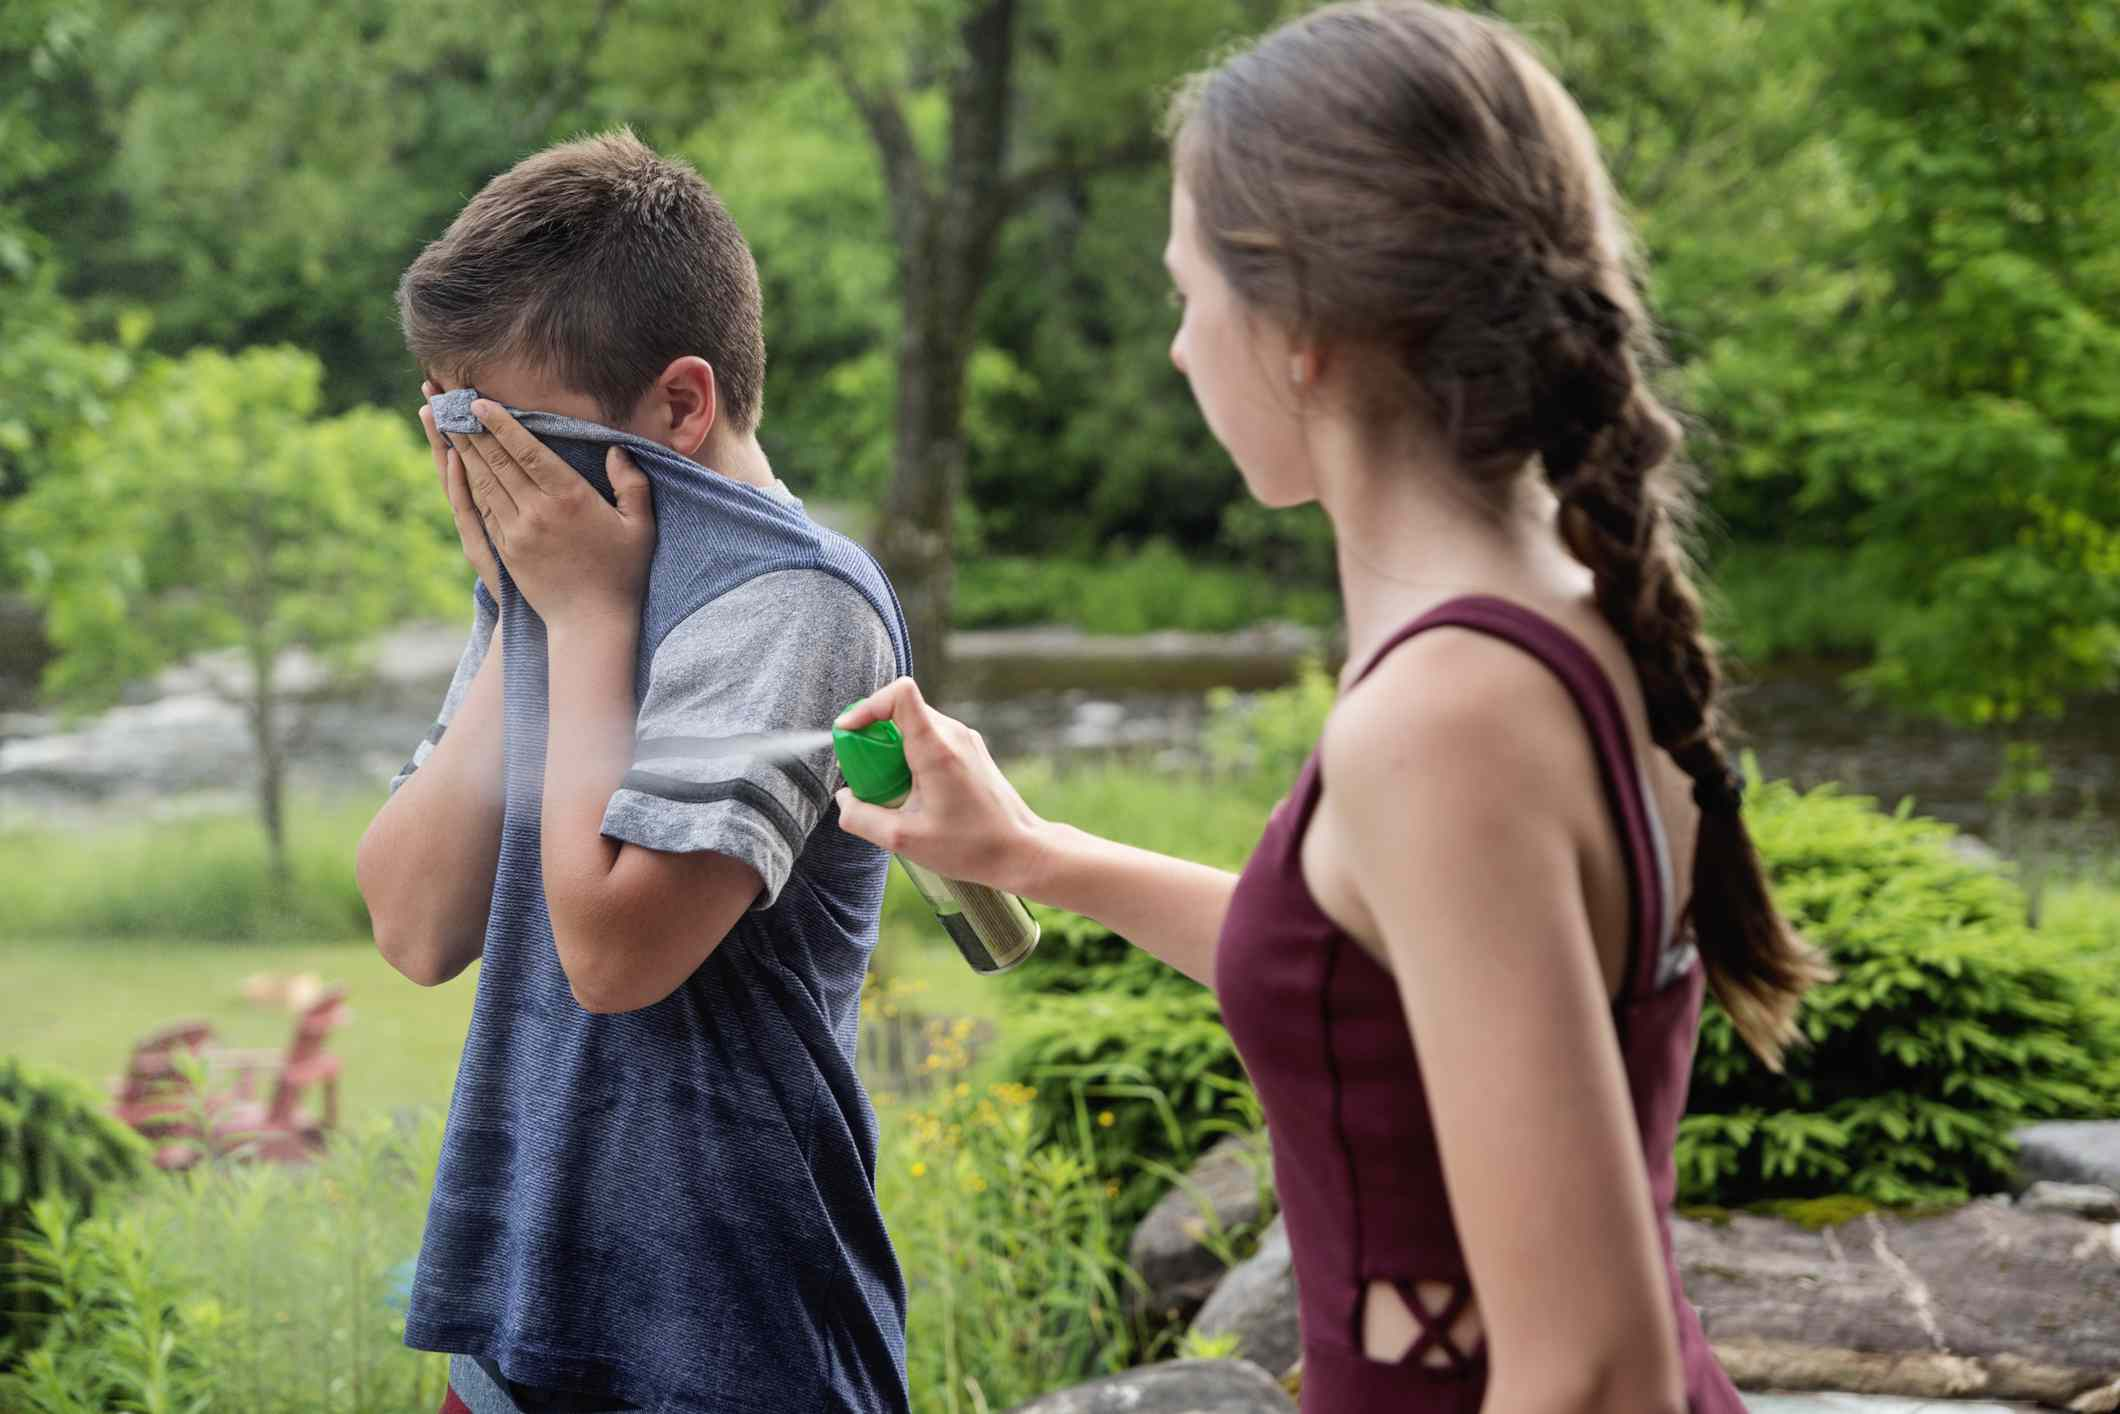 Girl spraying boy with bug repellent.